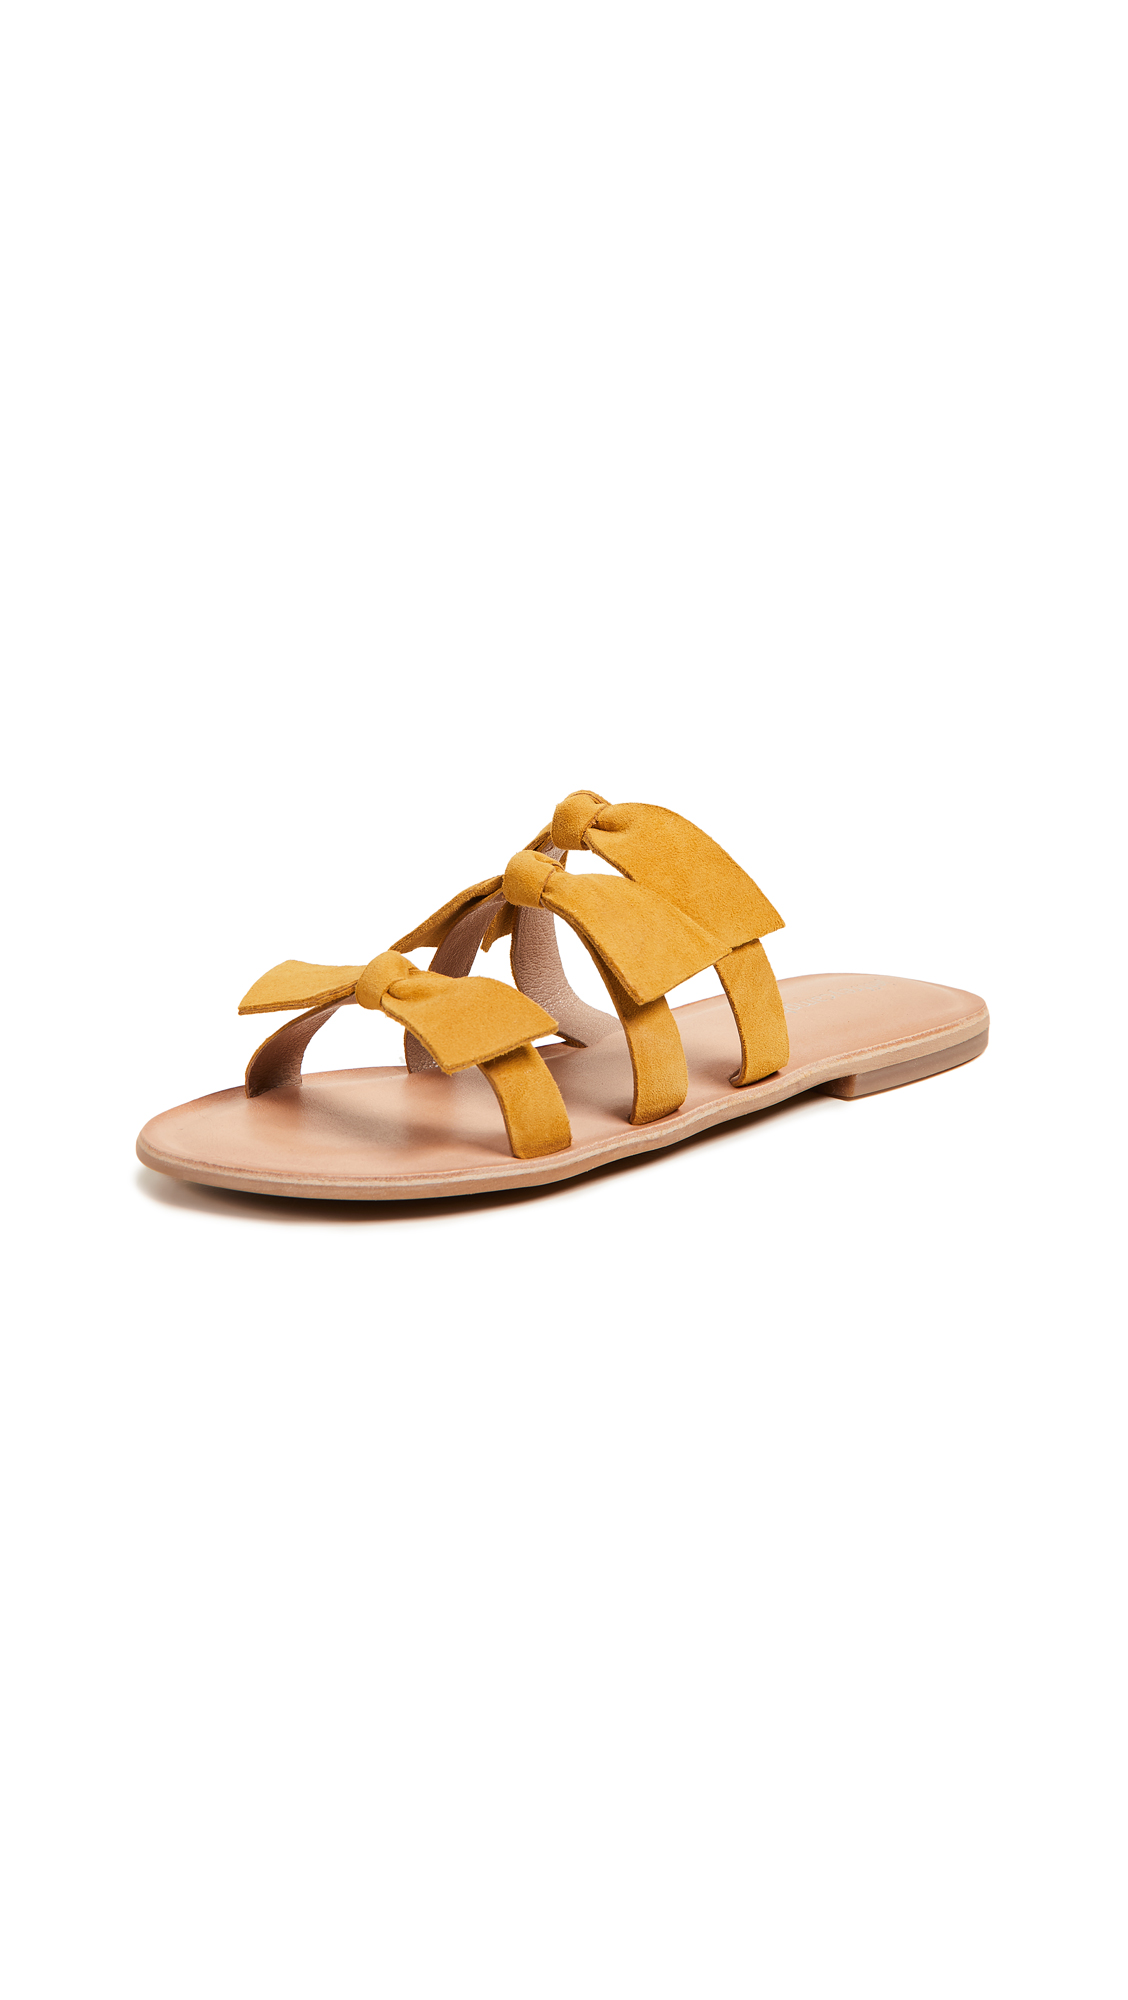 Jeffrey Campbell Atone Bow Sandals - Mustard